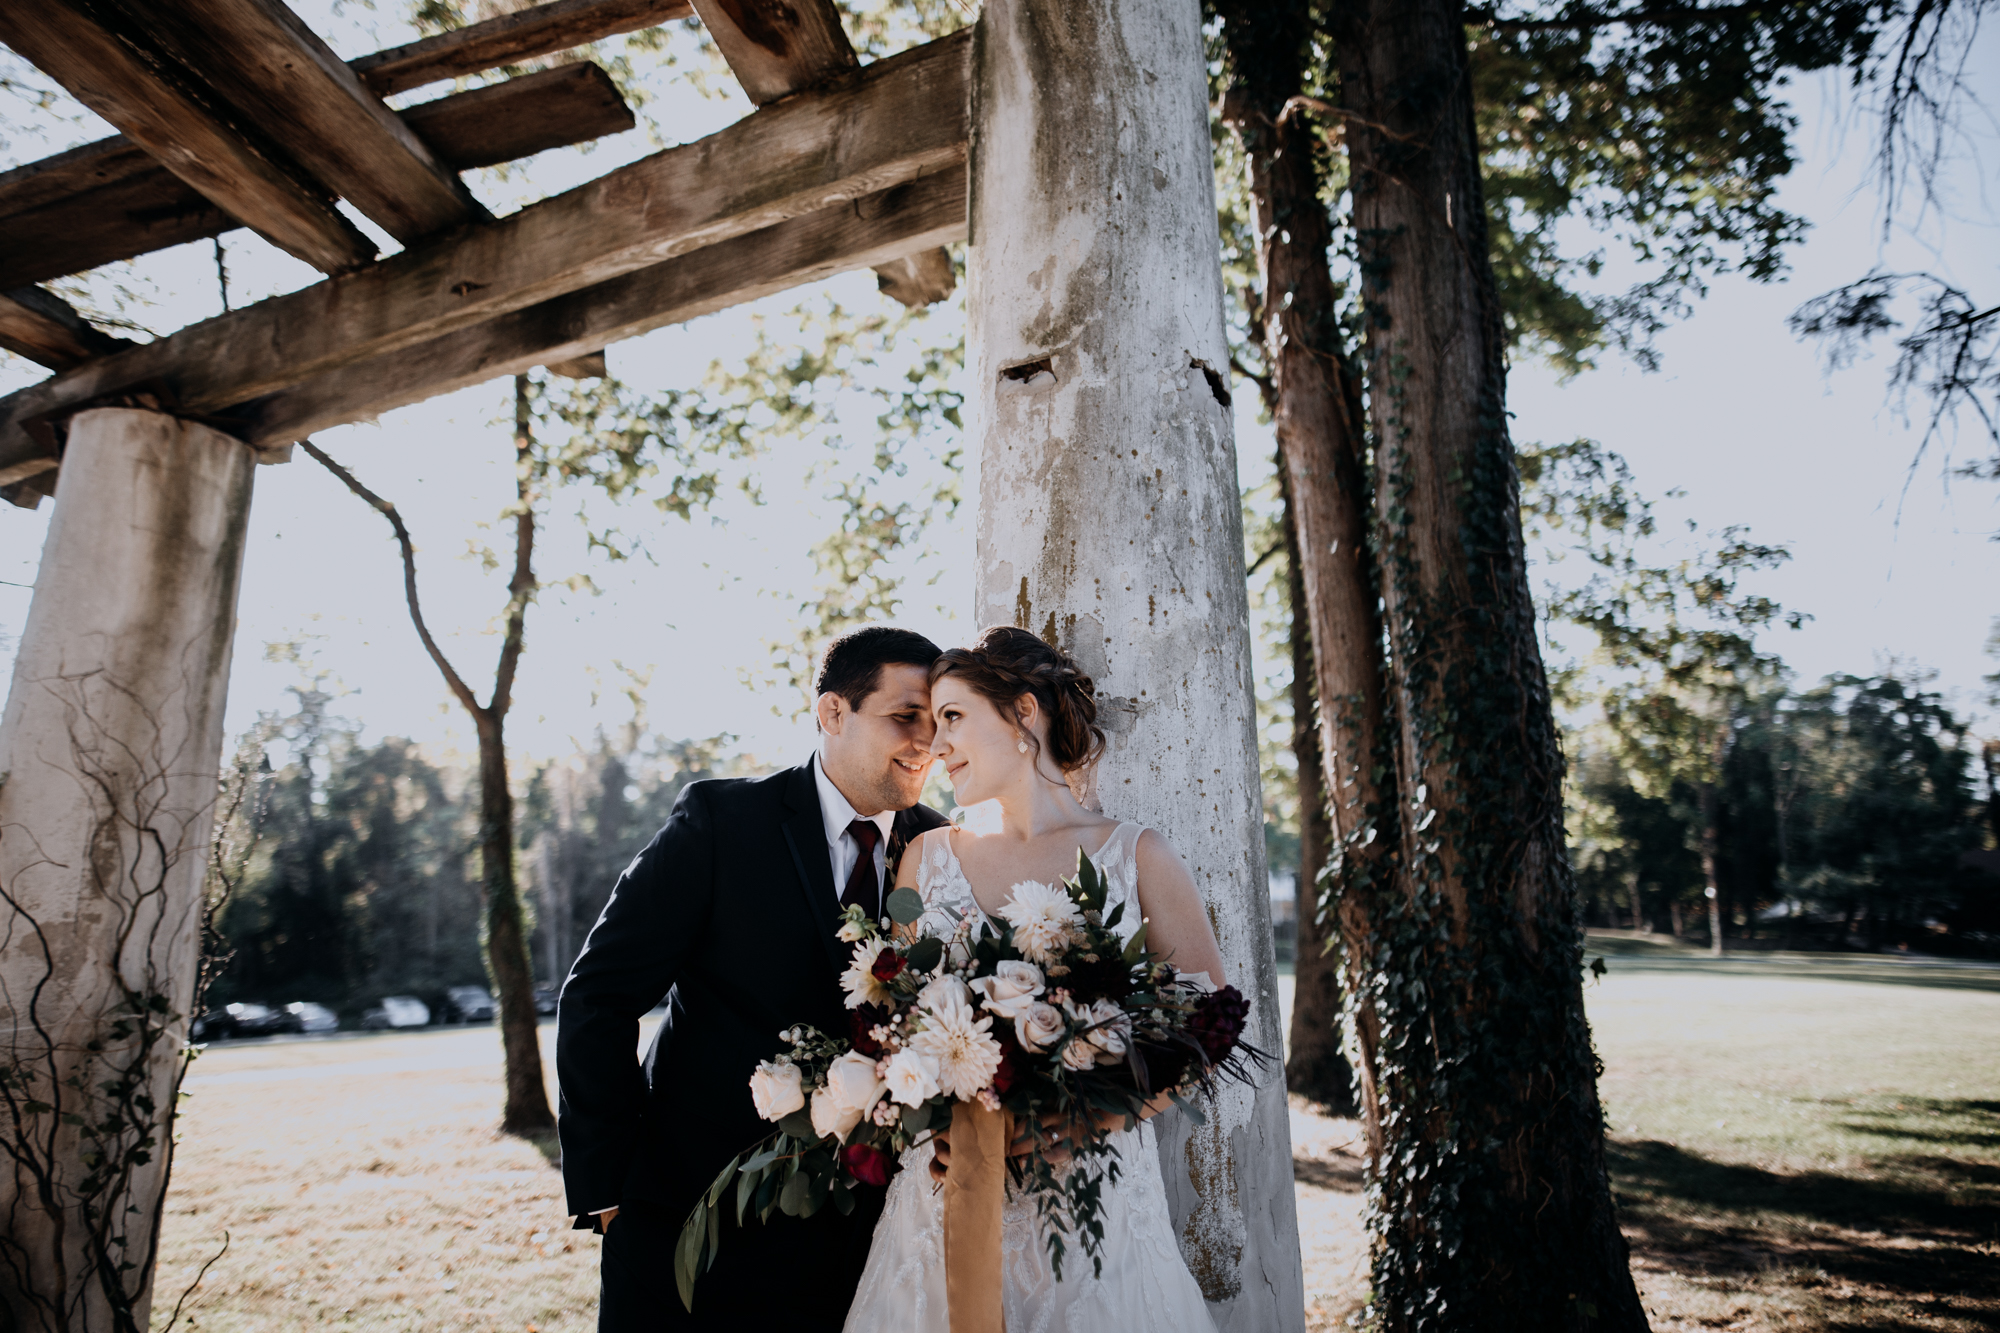 Cambria_Creative_Photographer_Boho_Wedding_Historic_Shady_Lane-1875.jpg